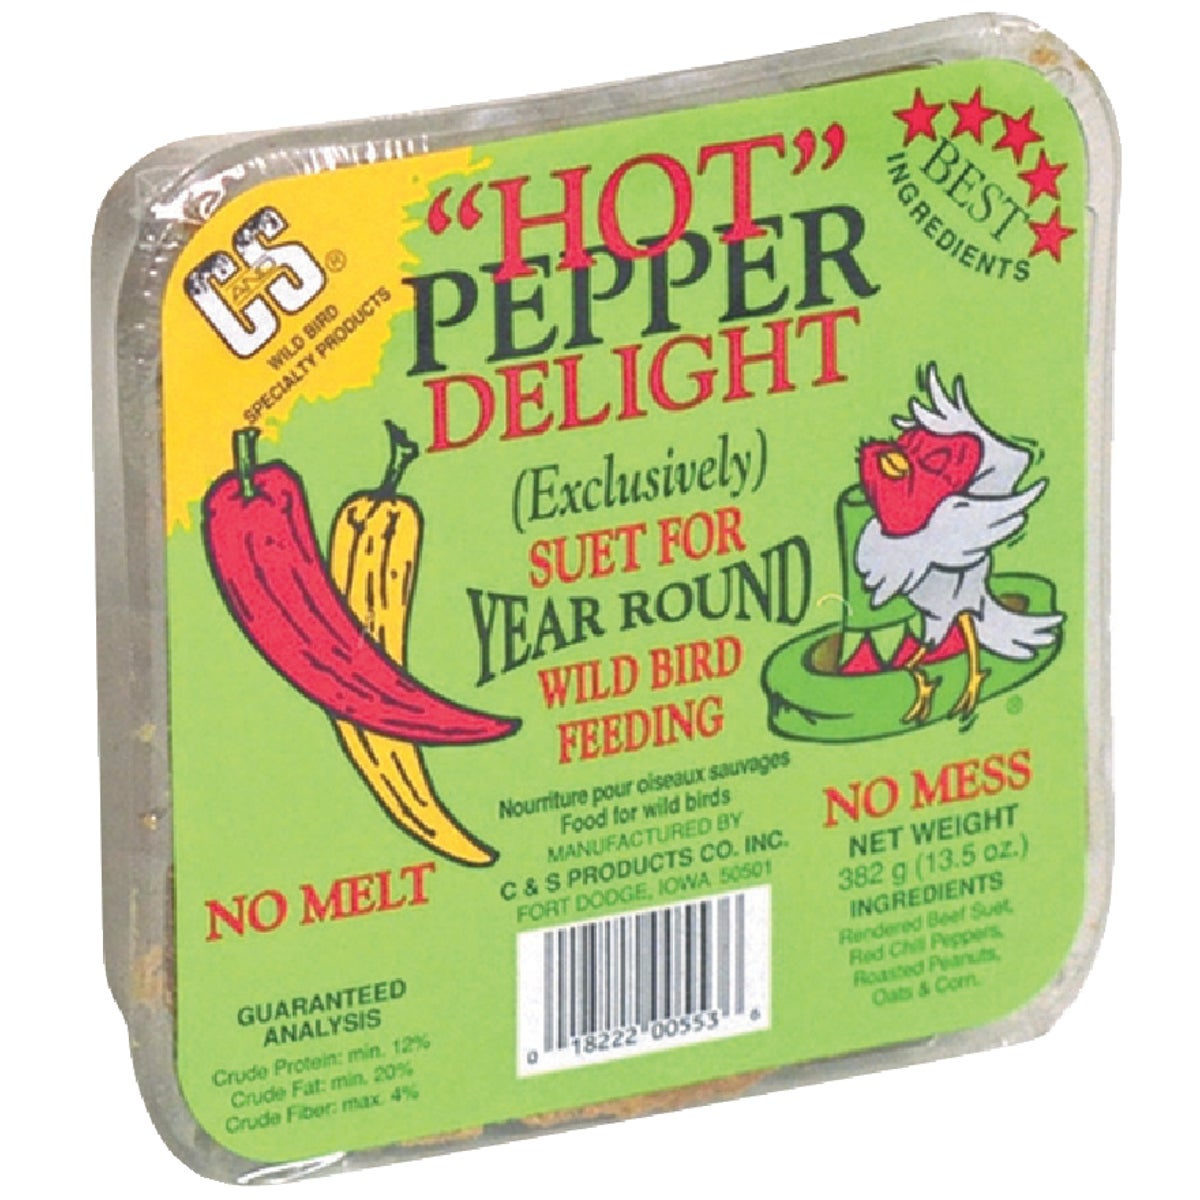 HOT PEPPER SUET - 12553 by C & S Products Inc